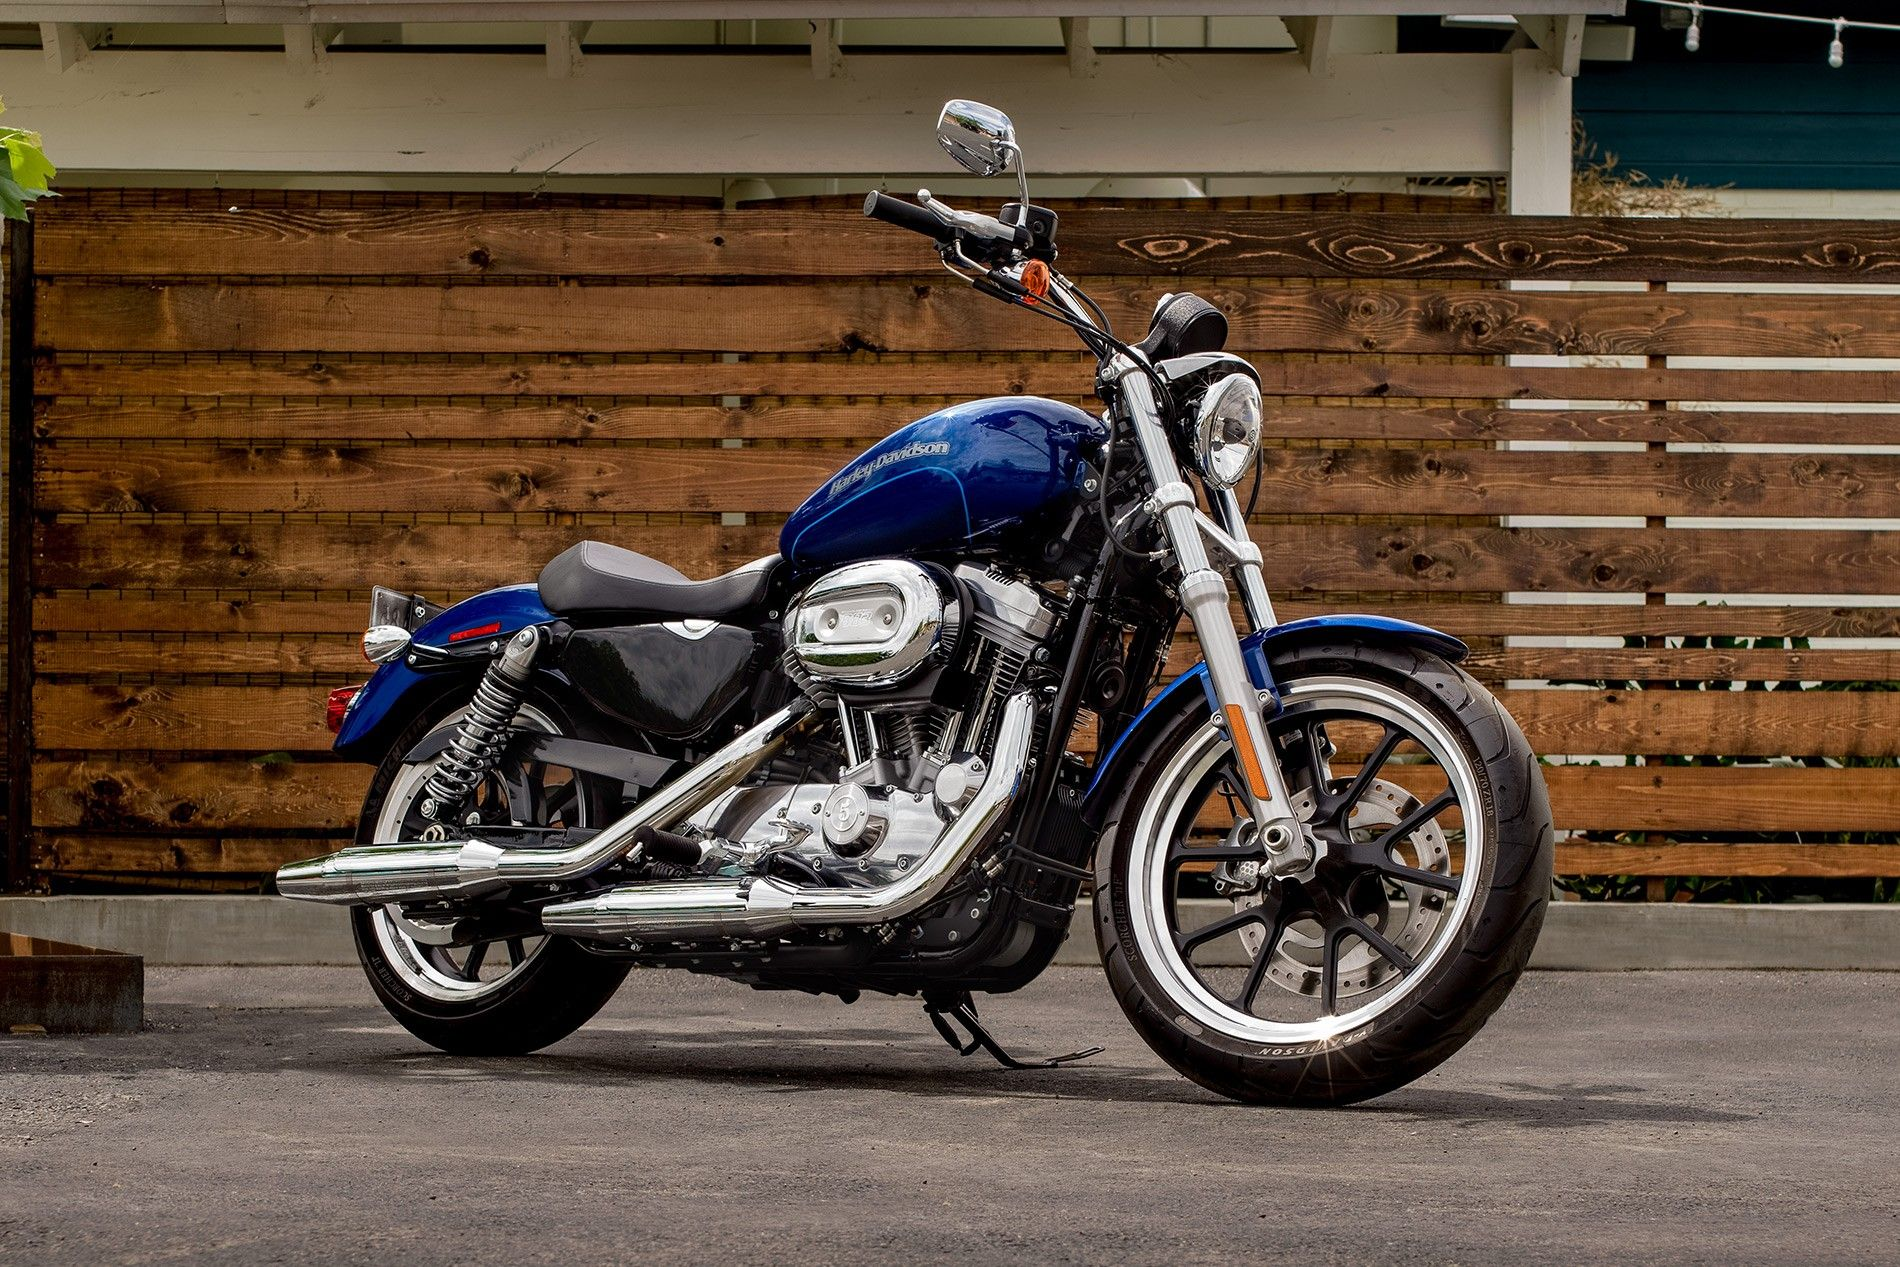 Harley-Davidson XL 883L 883 SuperLow